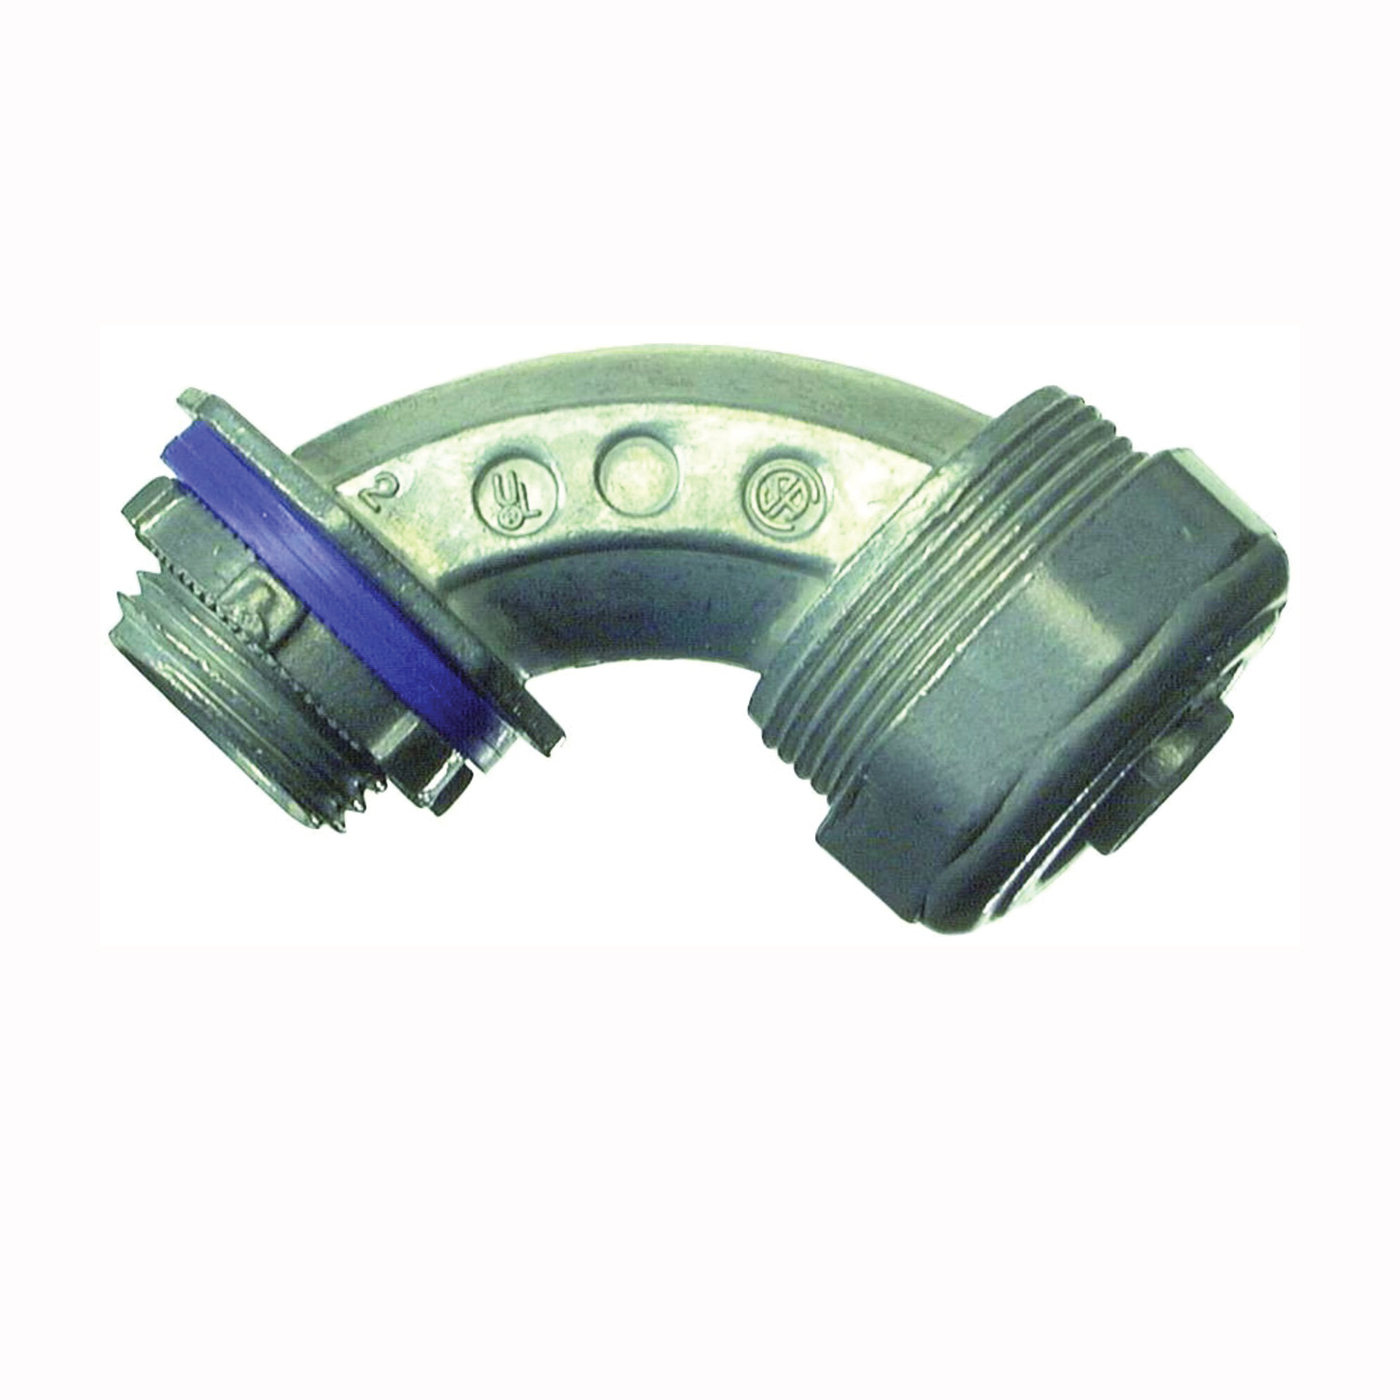 Picture of Halex 16905B Conduit Elbow, 90 deg Angle, 1/2 in Trade, Compression, Zinc